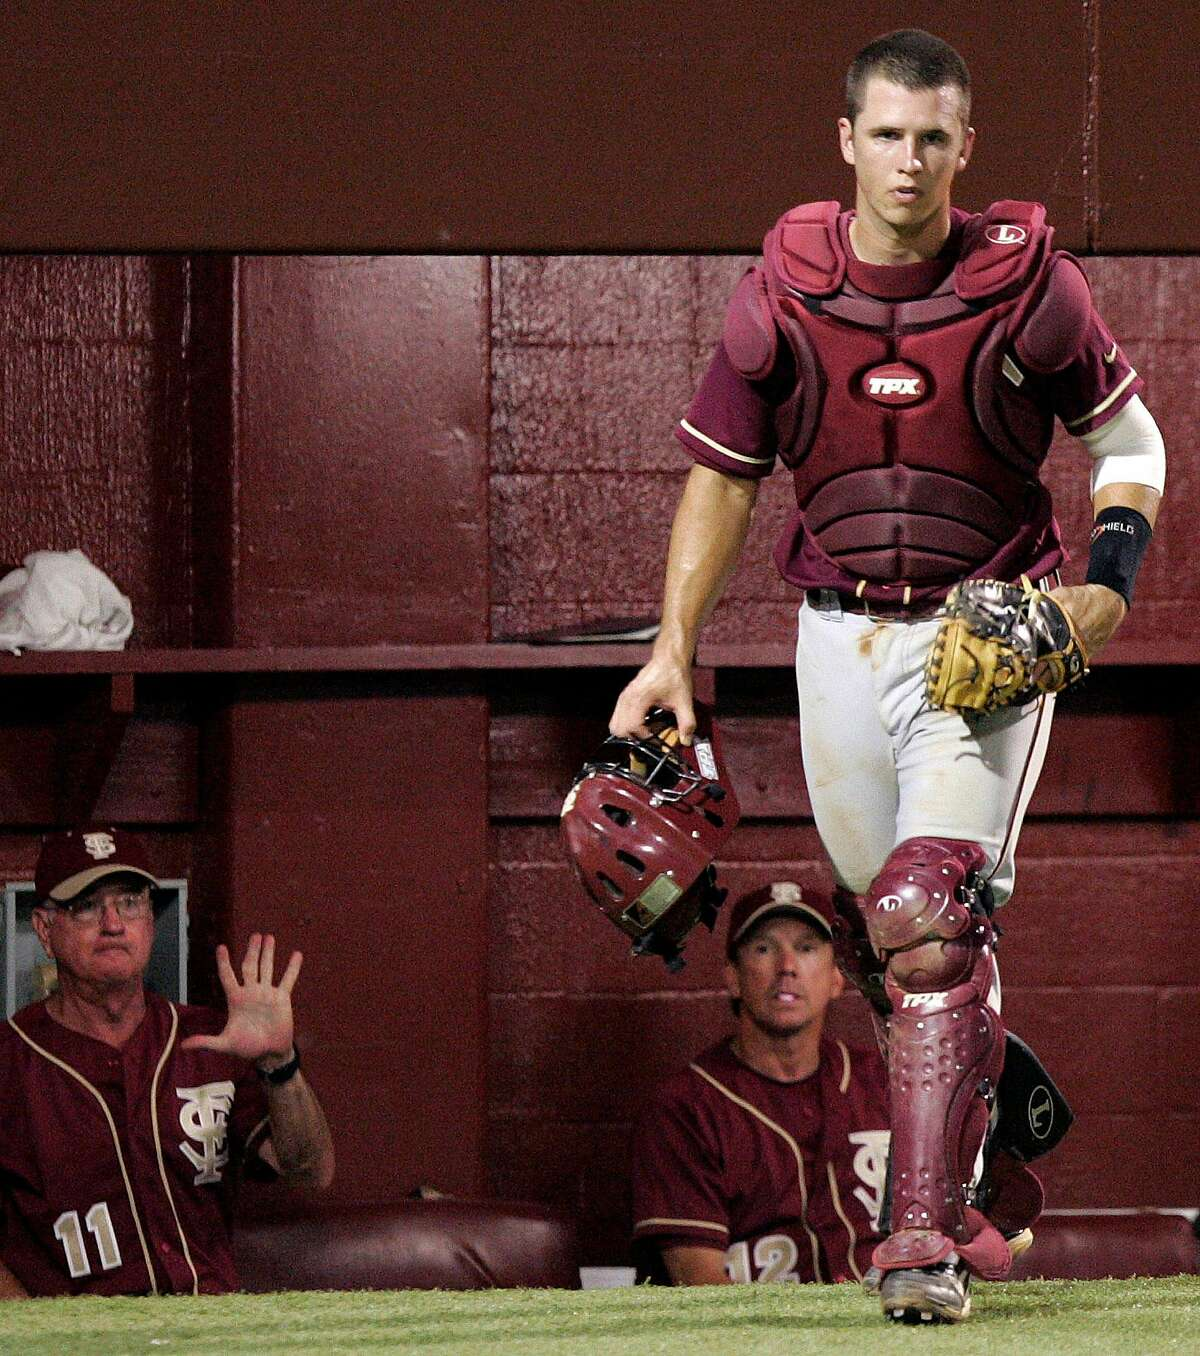 Florida State's Buster Posey heads out of the dugout in the fifth inning against Tulane in the championship baseball game of the Tallahassee Regional on Monday, June 2, 2008 in Tallahassee, Fla. Posey is projected to be one of the top draft picks when the Major League Baseball amateur draft starts Thursday.(AP Photo/Steve Cannon)